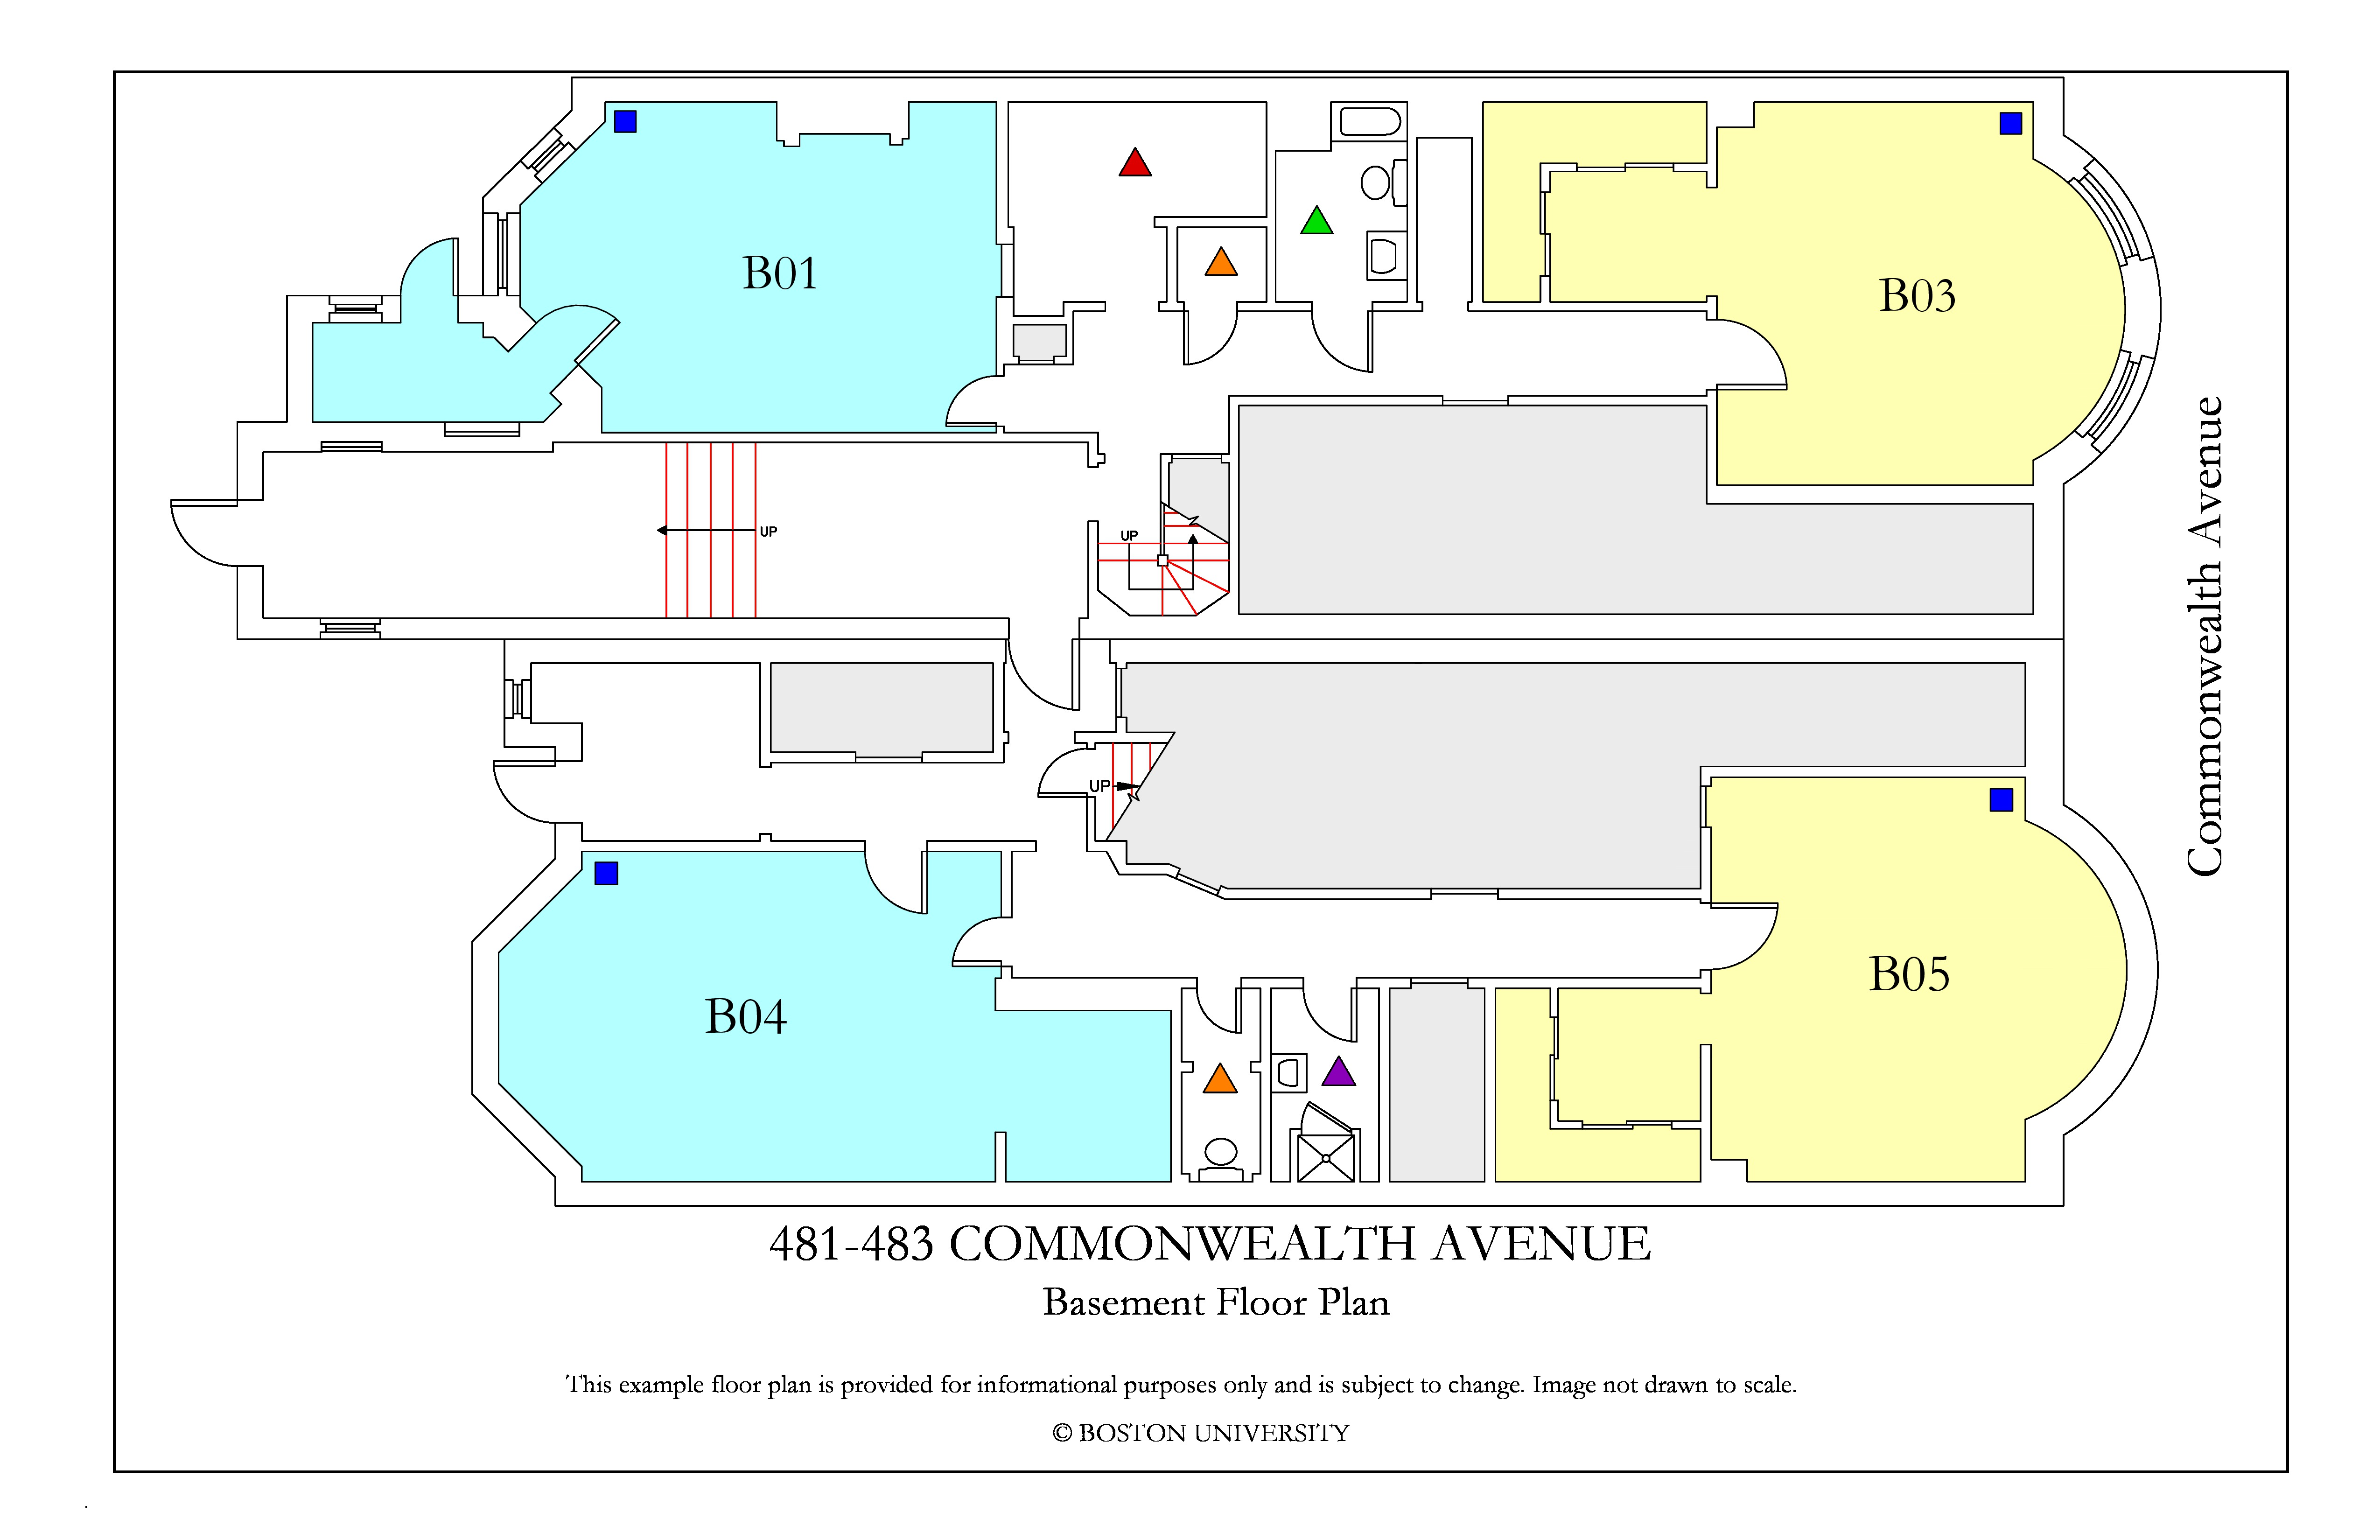 481-483 Commonwealth_BasementFloor